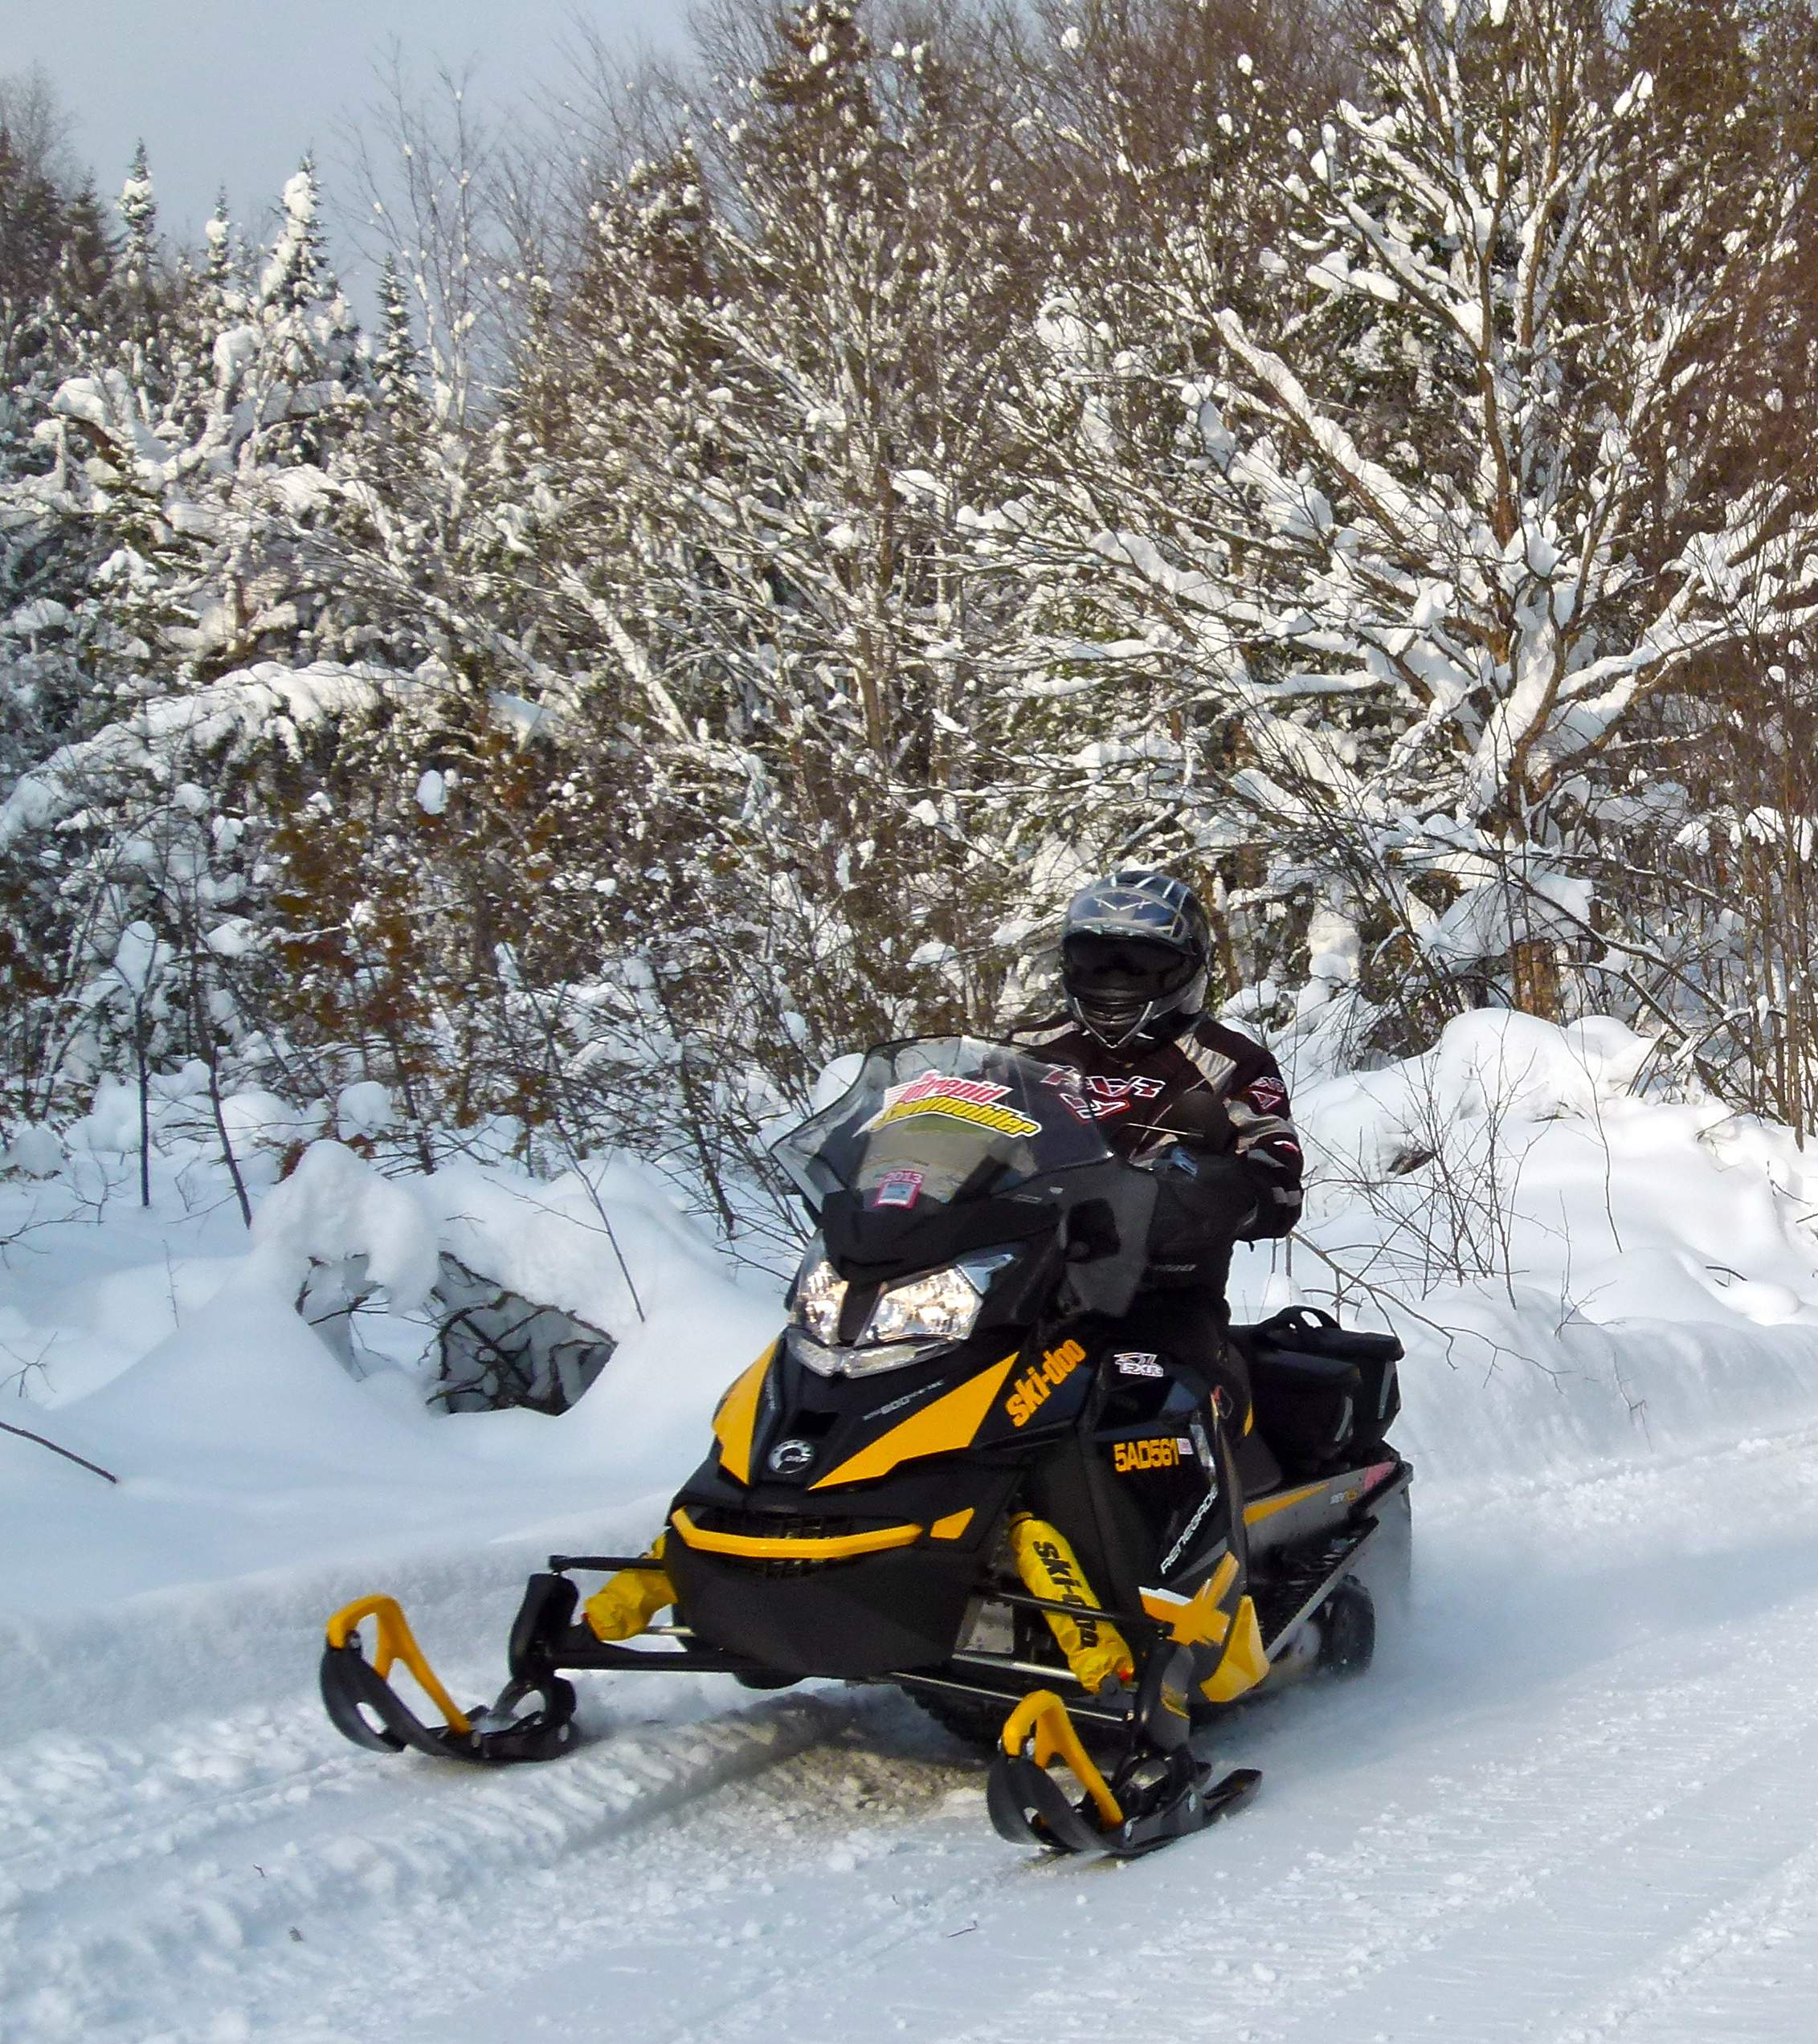 2013 Ski Doo Renegade X & Accessories